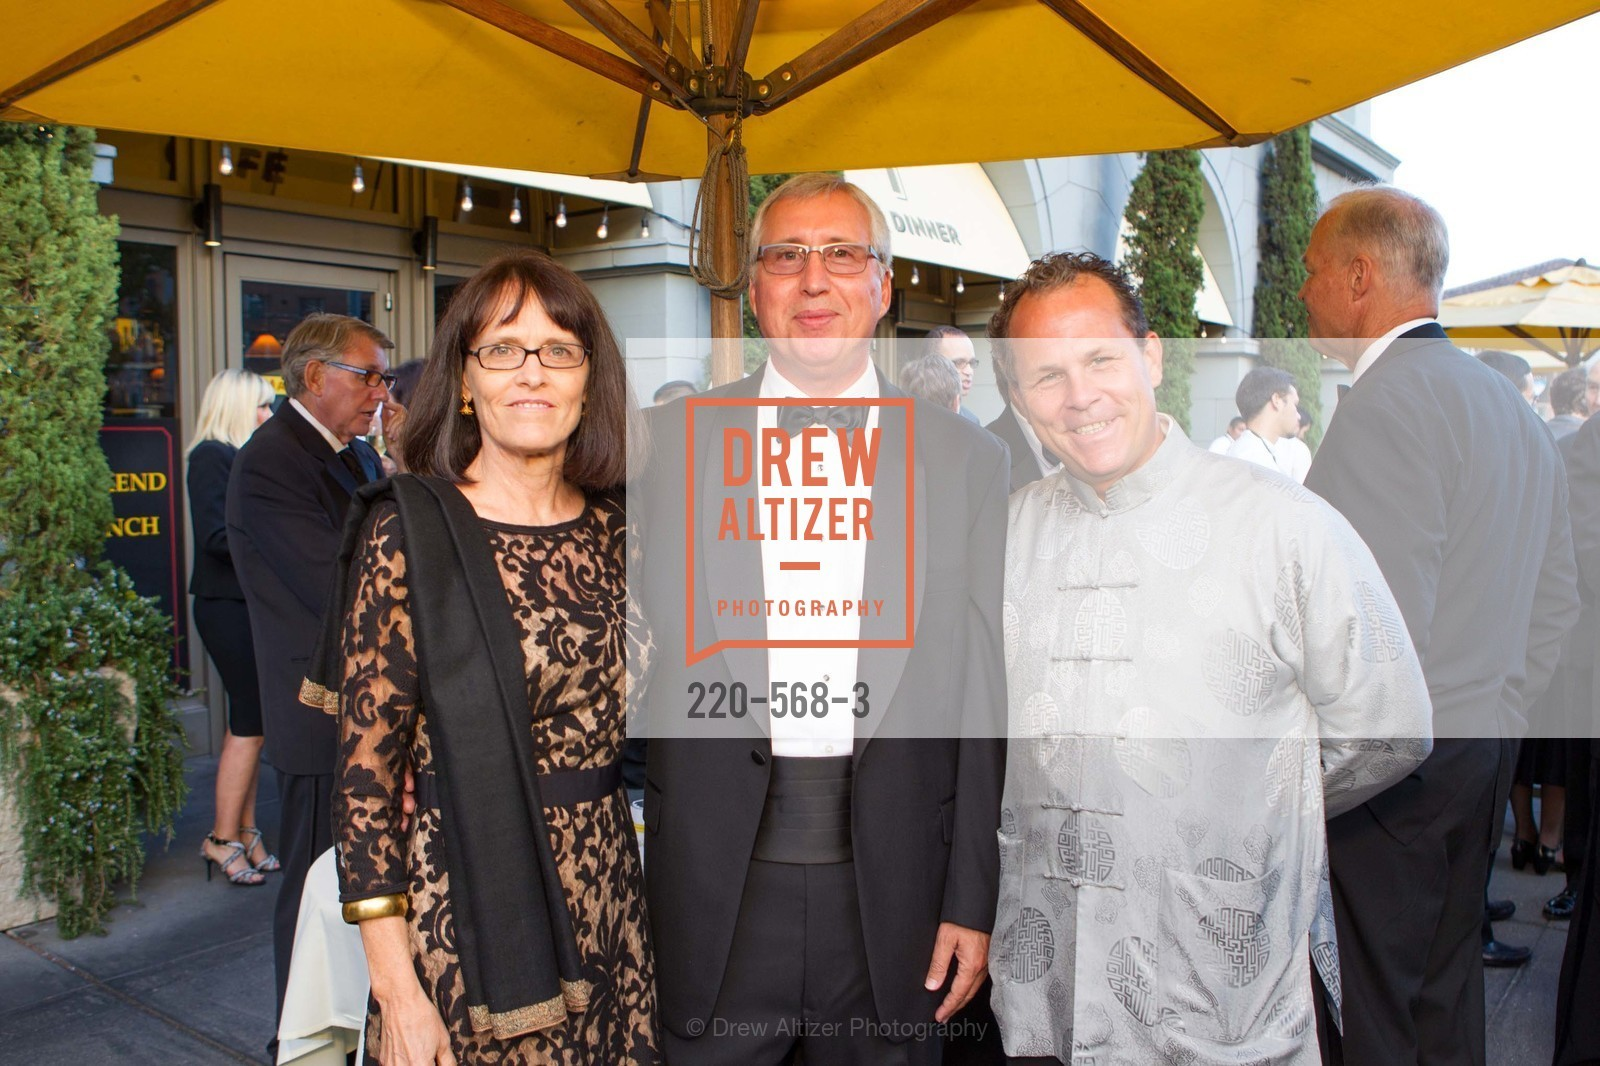 Karen Eliot, Ted Eliot, Matthew Rowland, SOTHEBY'S  Hosts a Private Viewing of Highlights from the Collection of MRS. PAUL MELLON, US, September 17th, 2014,Drew Altizer, Drew Altizer Photography, full-service agency, private events, San Francisco photographer, photographer california